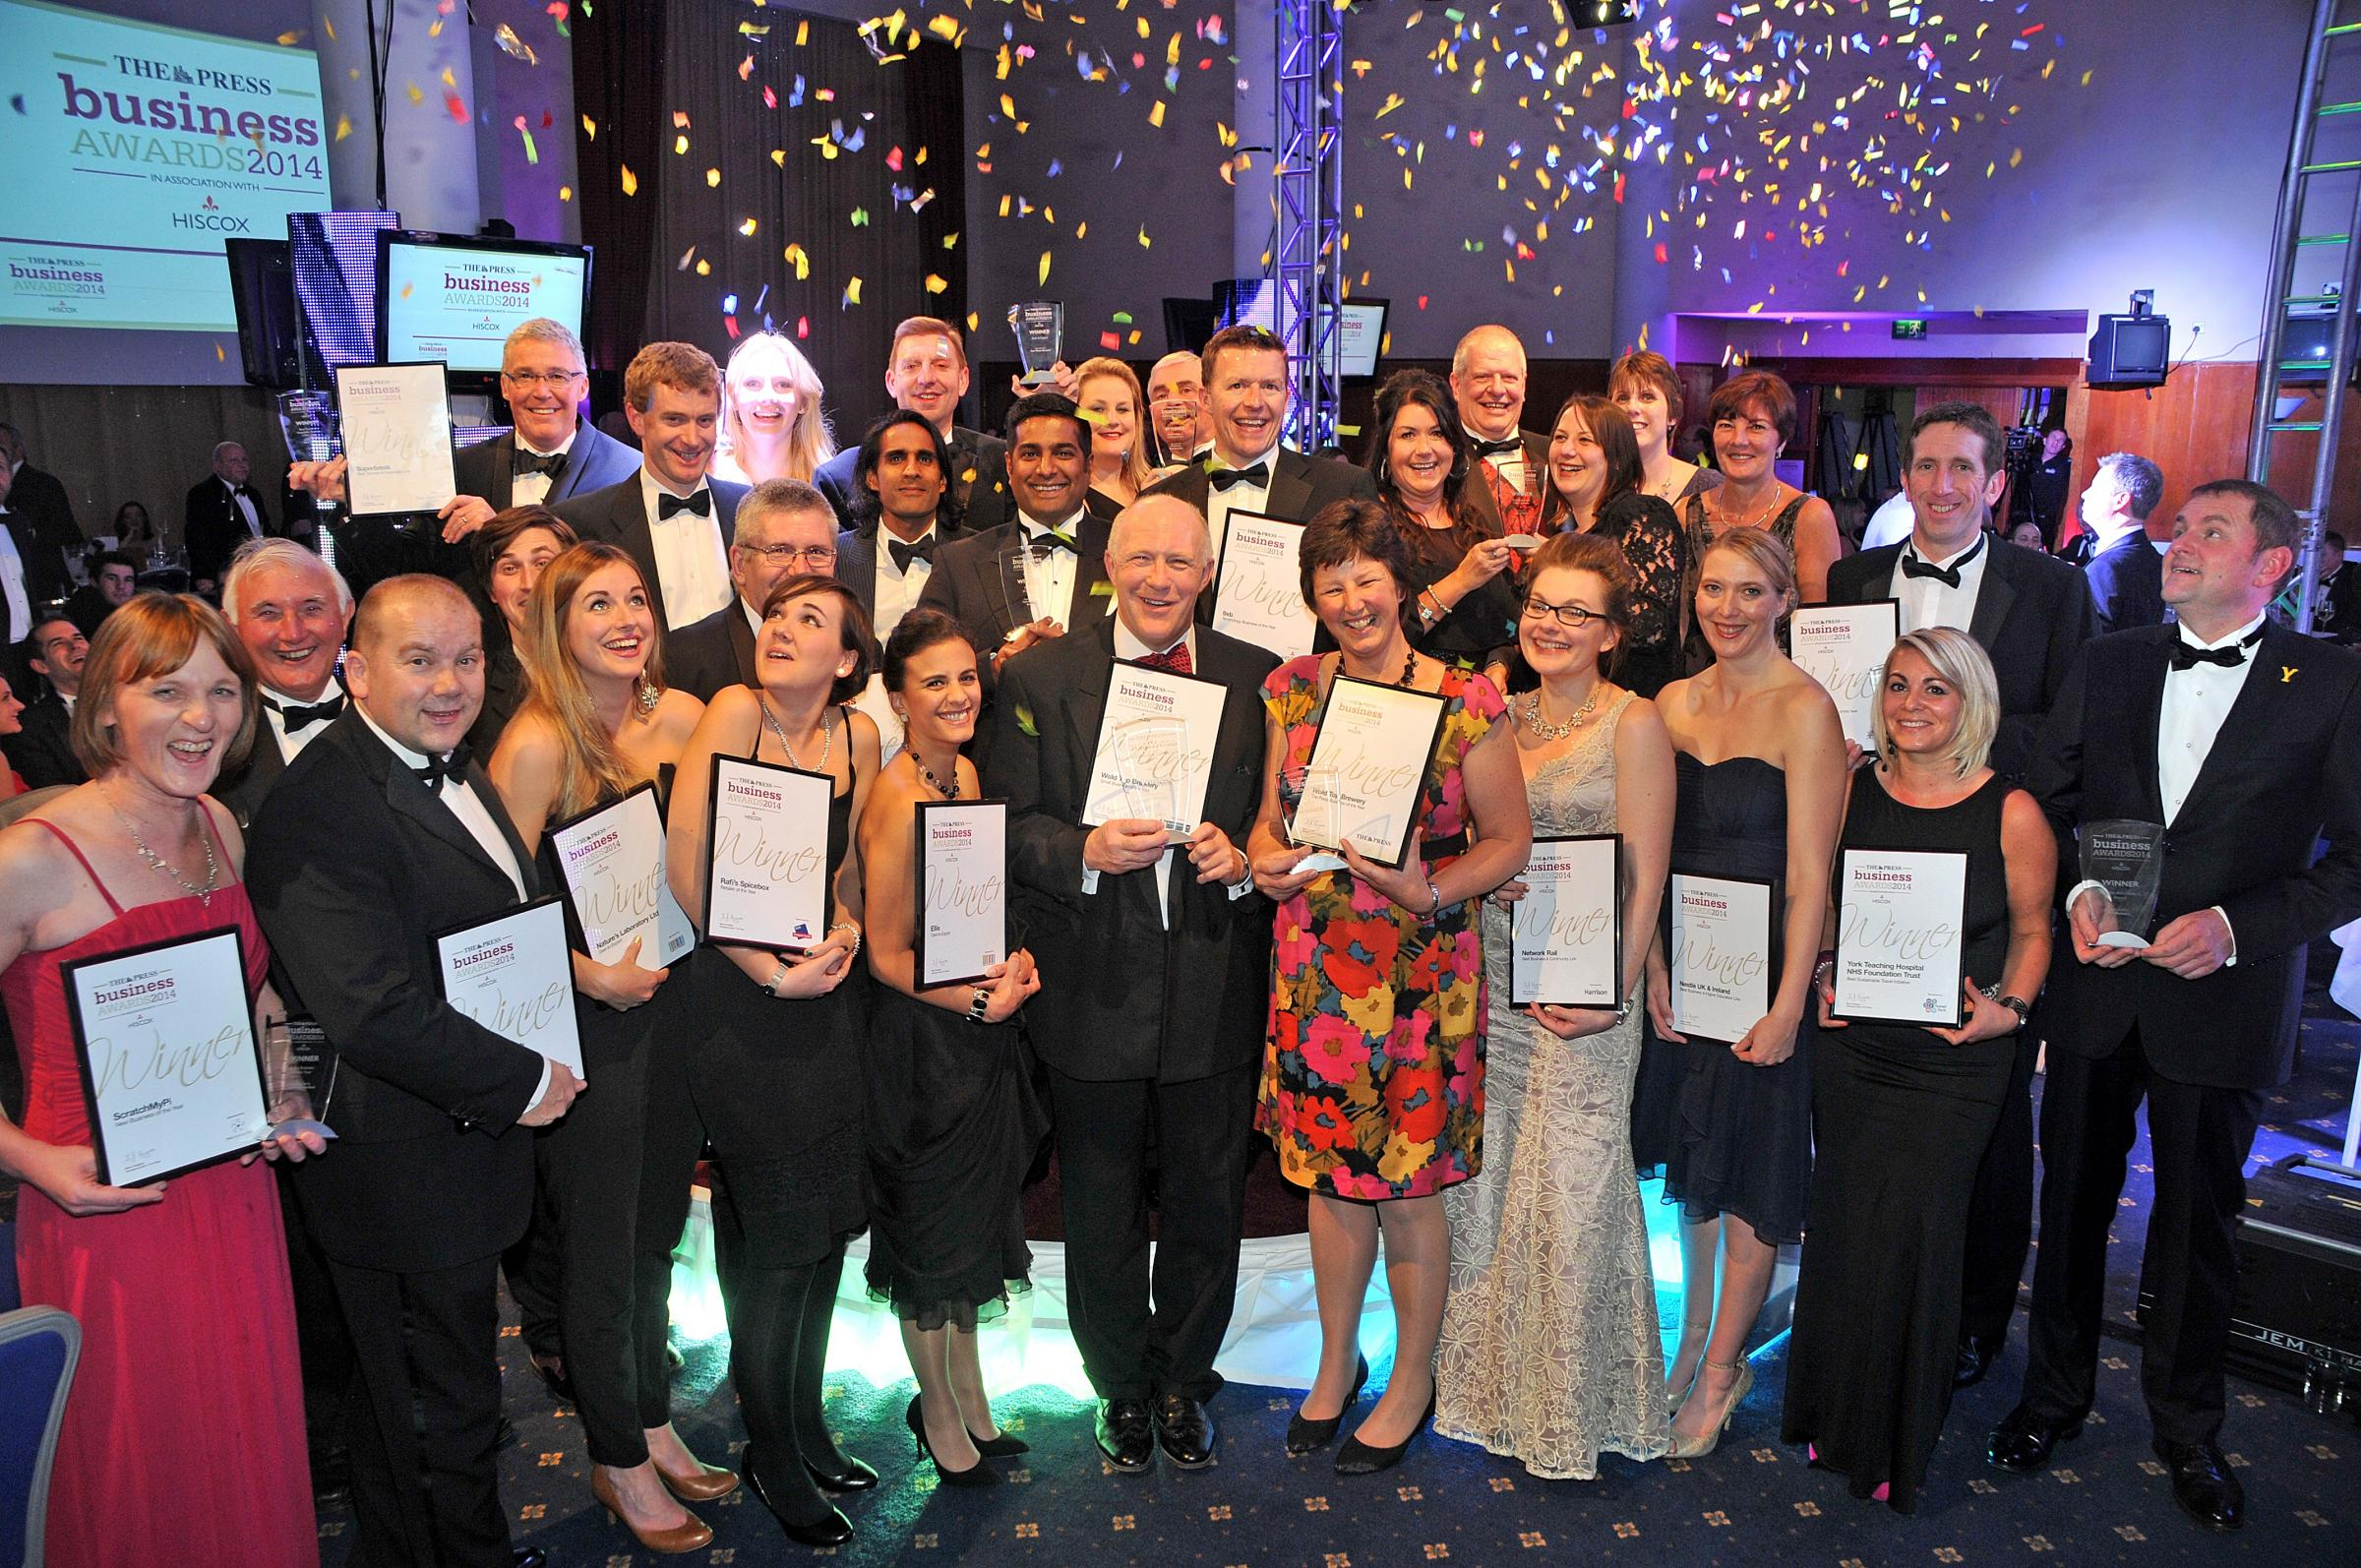 Last year's Business Award Winners